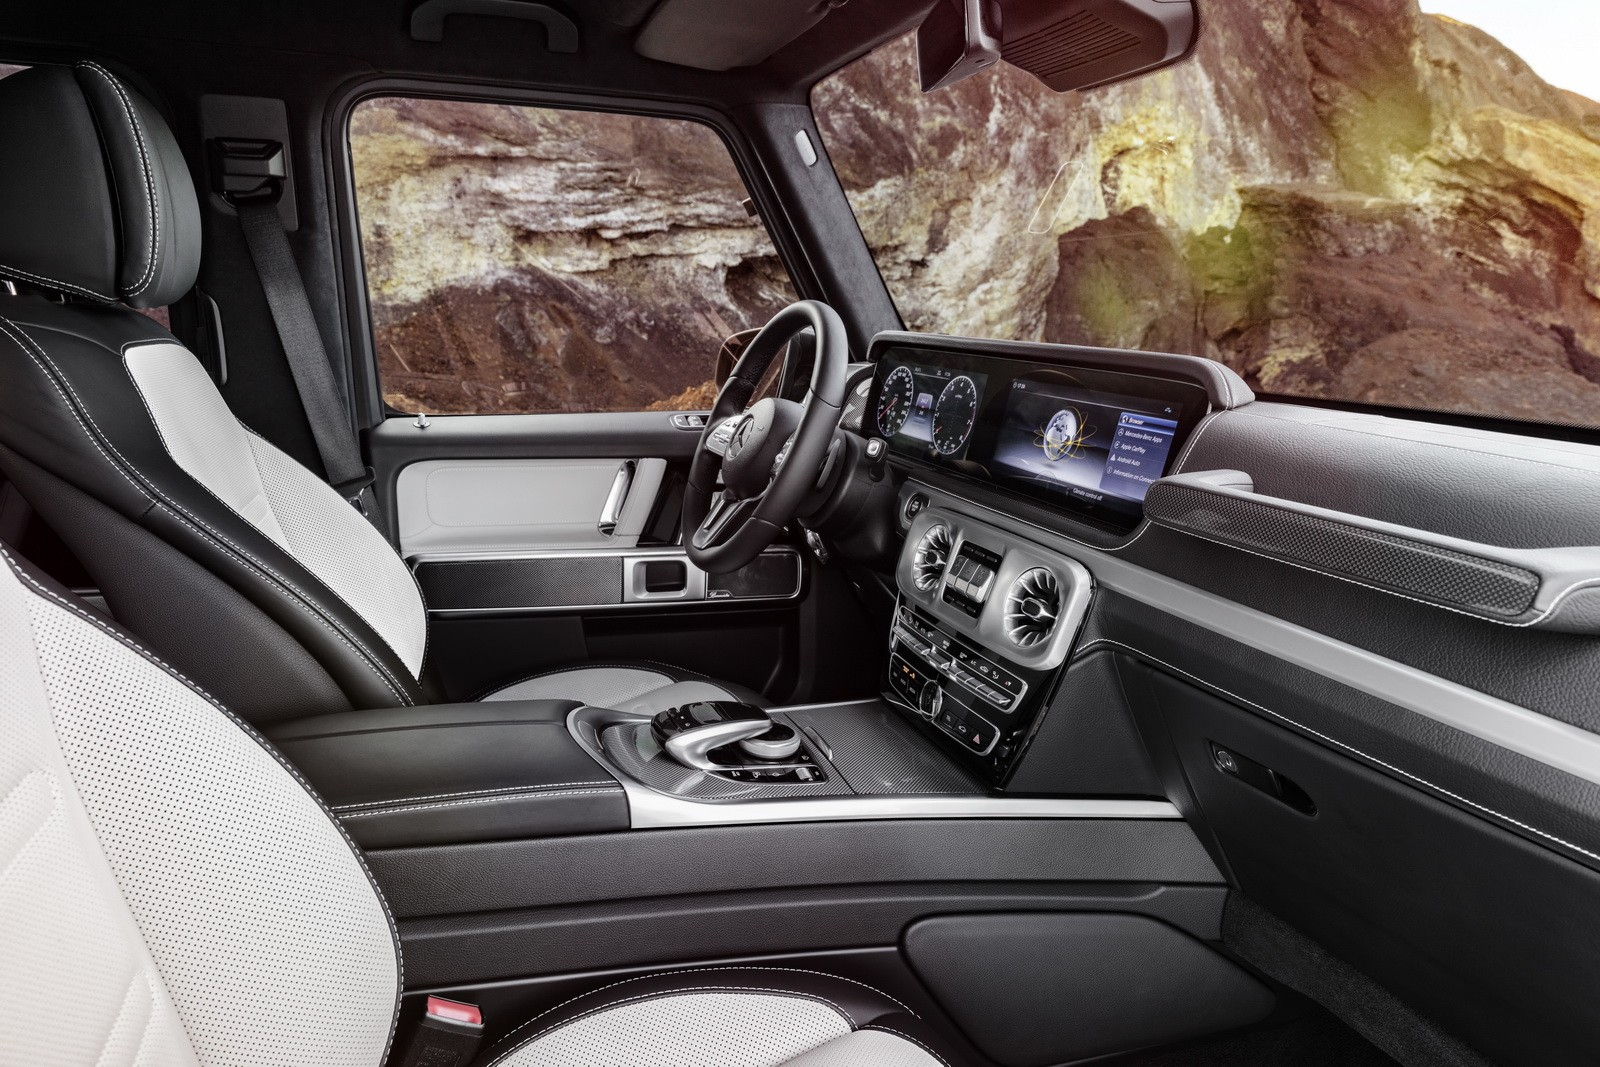 w464 g class to gain mercedes amg g63 variant at 2018. Black Bedroom Furniture Sets. Home Design Ideas